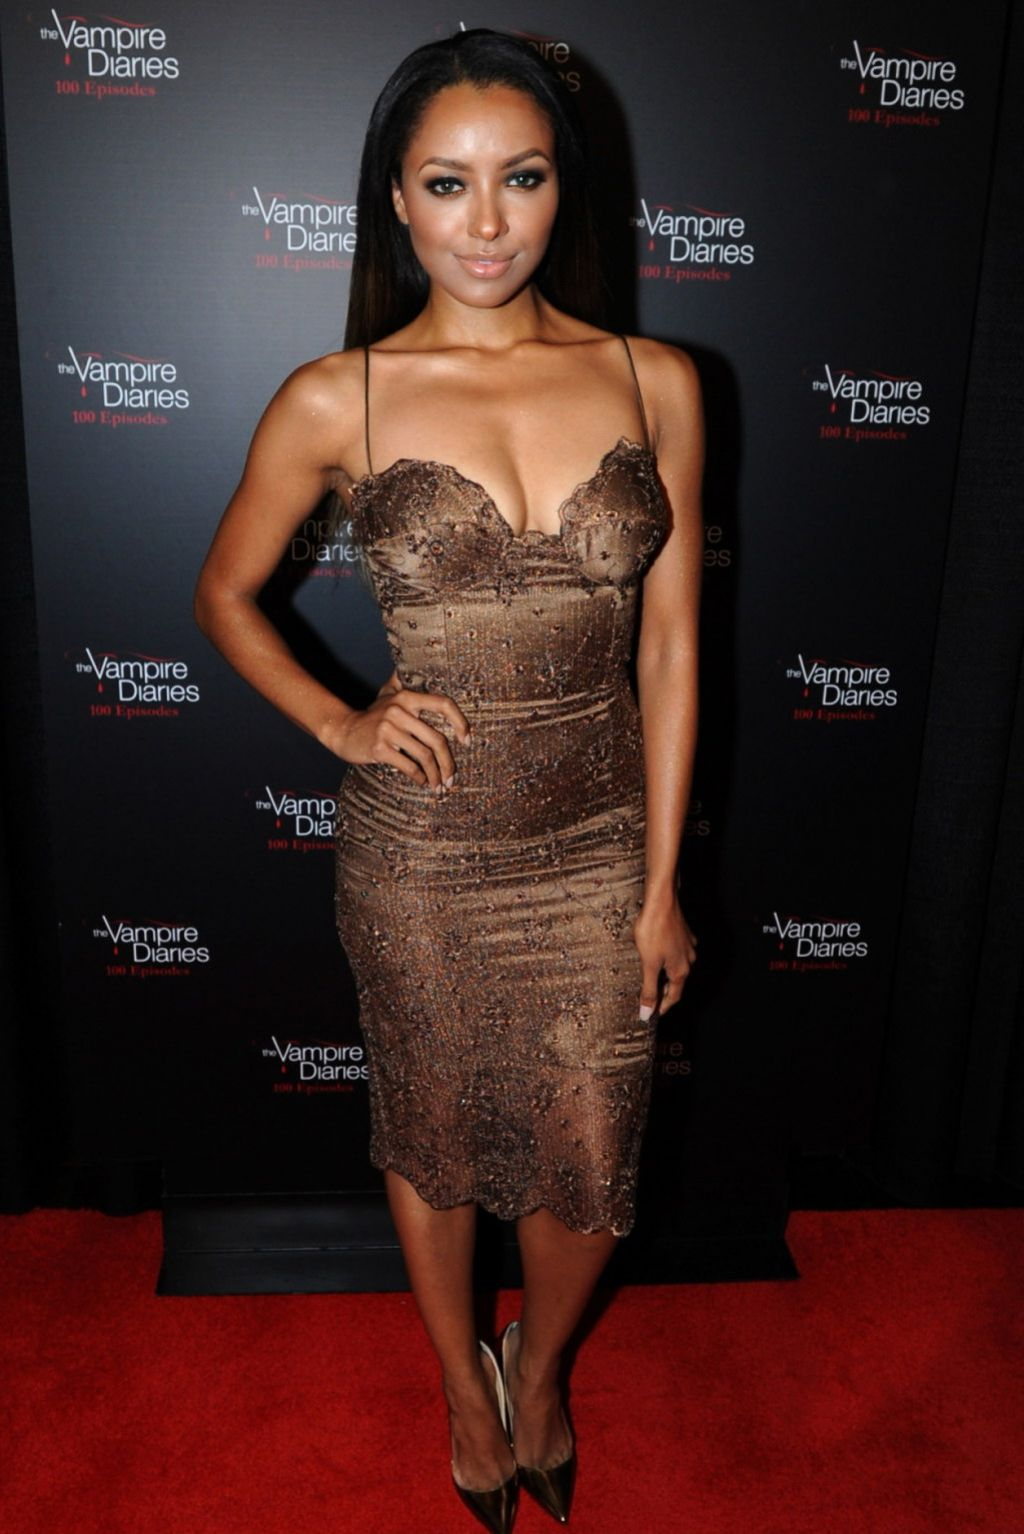 ¿Cuánto mide Kat Graham? - Real height Kat-graham-on-red-carpet-the-vampire-diaries-100th-episode-celebration_1